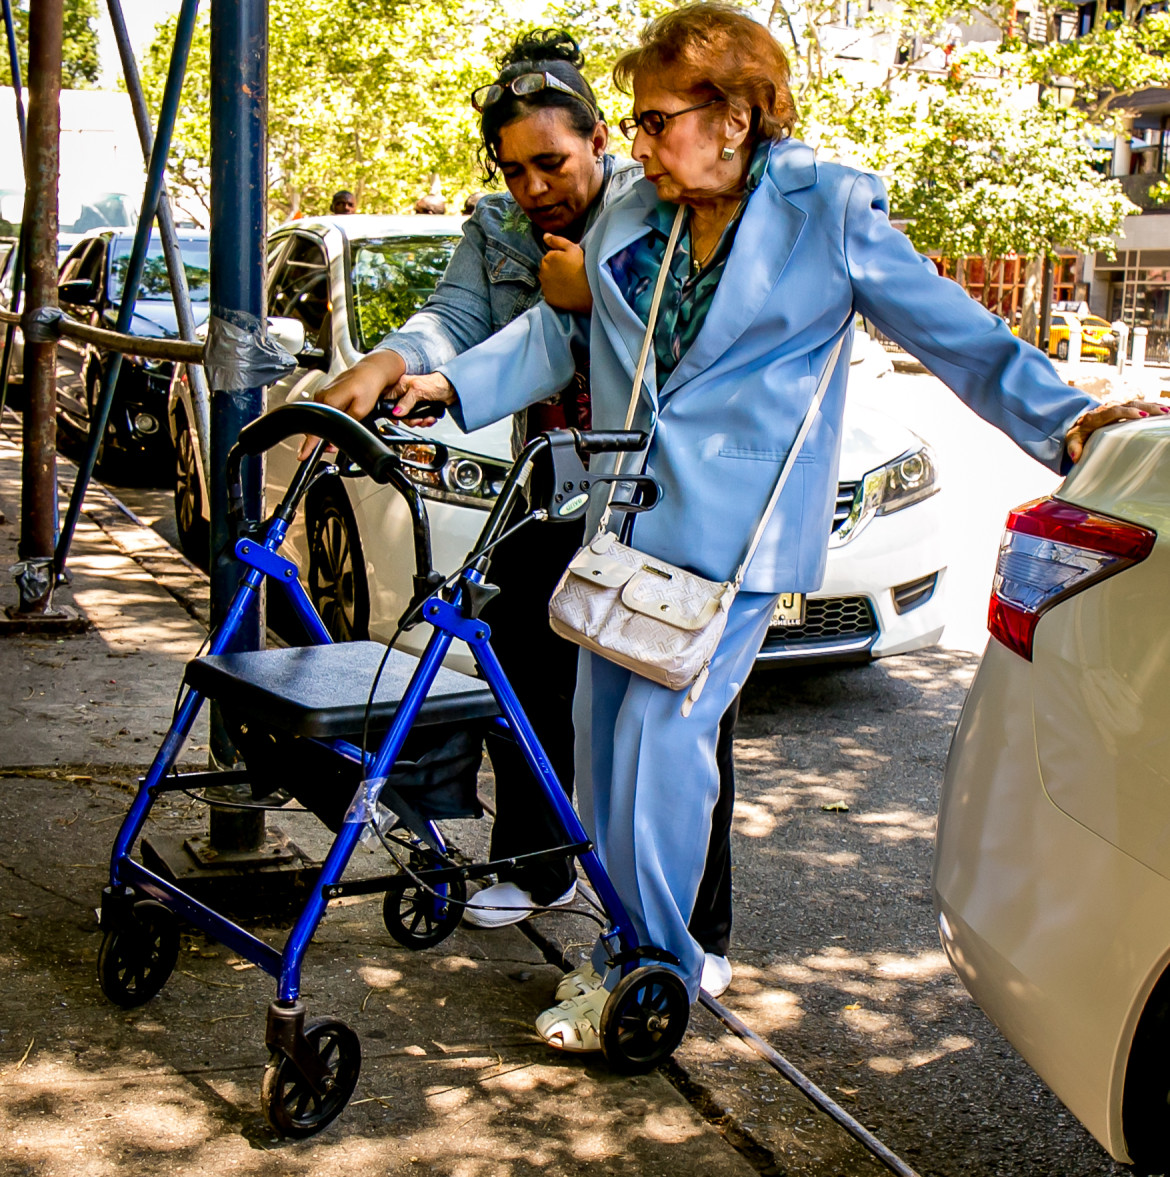 A senior citizen and a caregiver on their way to the Allen Street near Stanton street. The two ladies were on their way to  a senior center run by University Settlement on Allen Street in Manhattan. By 2030, one in five New Yorkers will be older than 60.